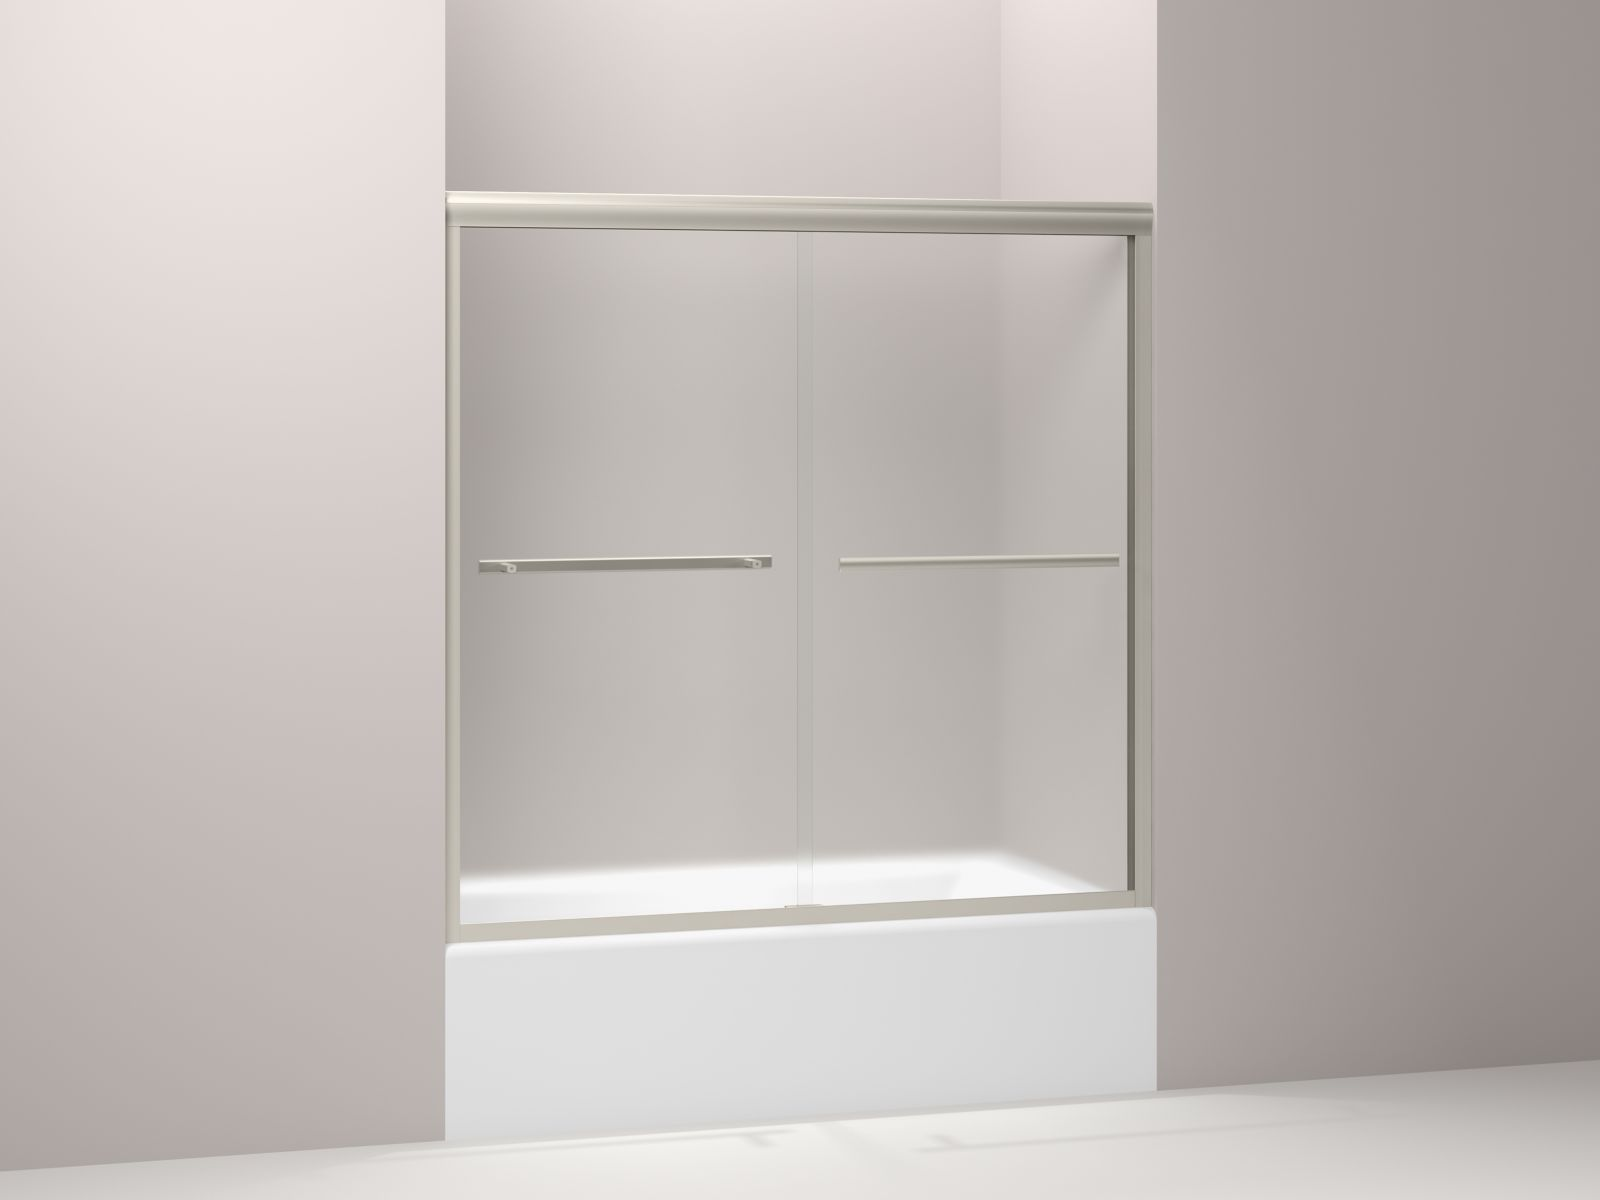 "Kohler Gradient™ K-709062-D3-MX sliding bath door 58-1/16"" H x 59-5/8"" W, with 1/4"" thick Frosted glass Matte Nickel"